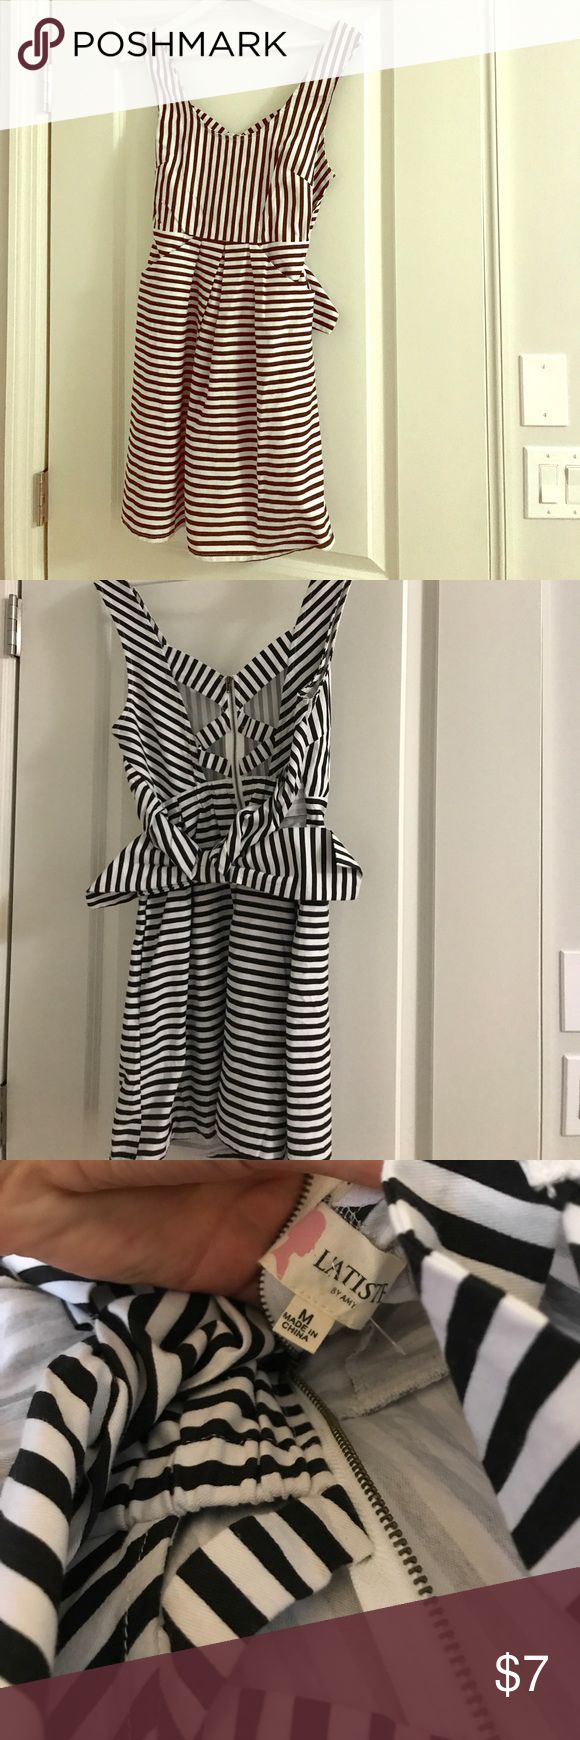 NWOT Black and White Striped L'atiste Dress Cute NWOT dress, size medium but seems more like a small. Never worn, came with some fabric snares from the boutique I bought it from so I am marking down the price. Cute bow in the back. Great for going out! l'atiste Dresses